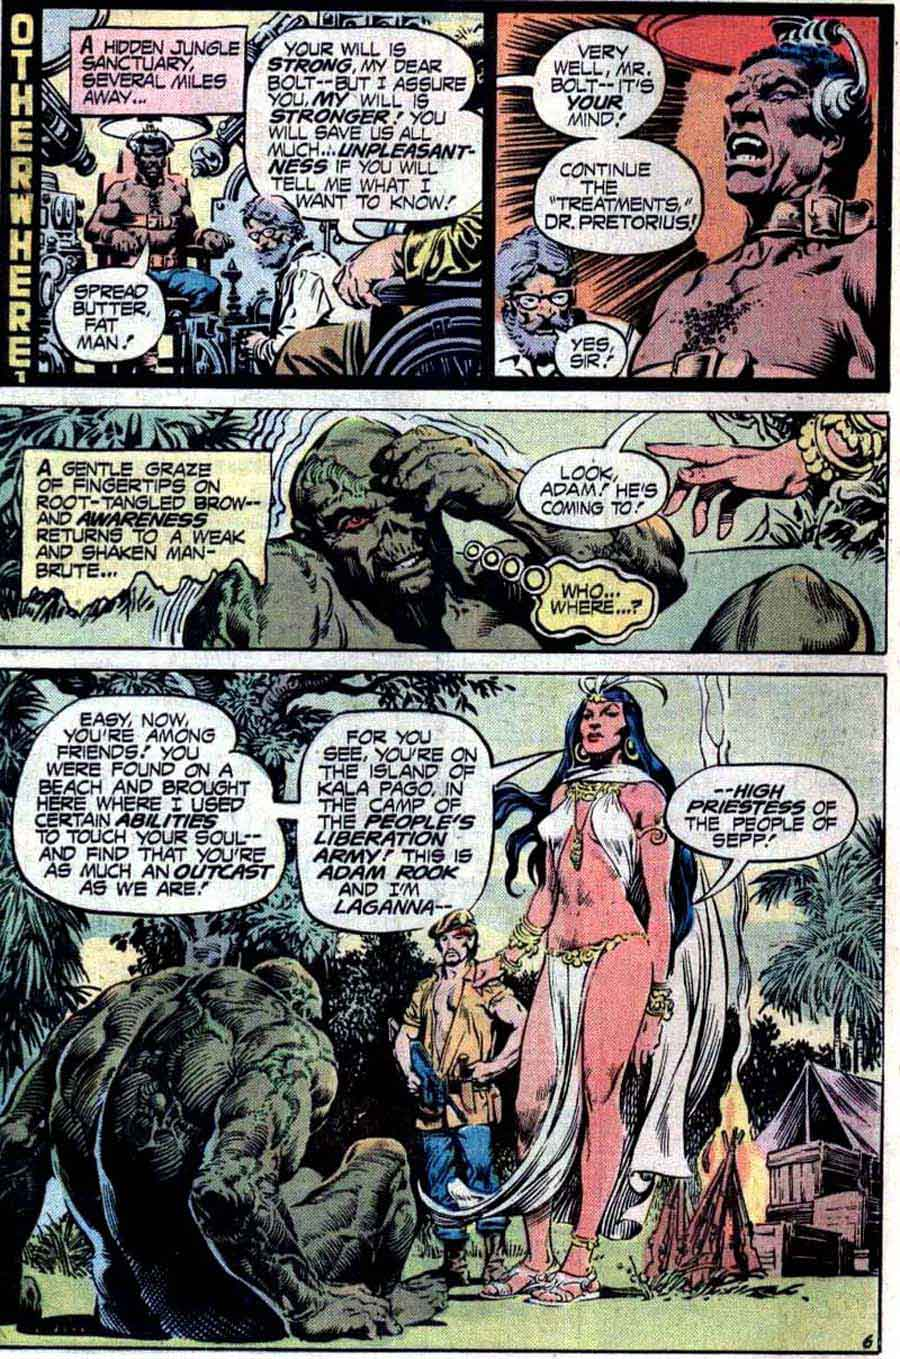 Swamp Thing v1 #16 1970s bronze age dc comic book page art by Nestor Redondo